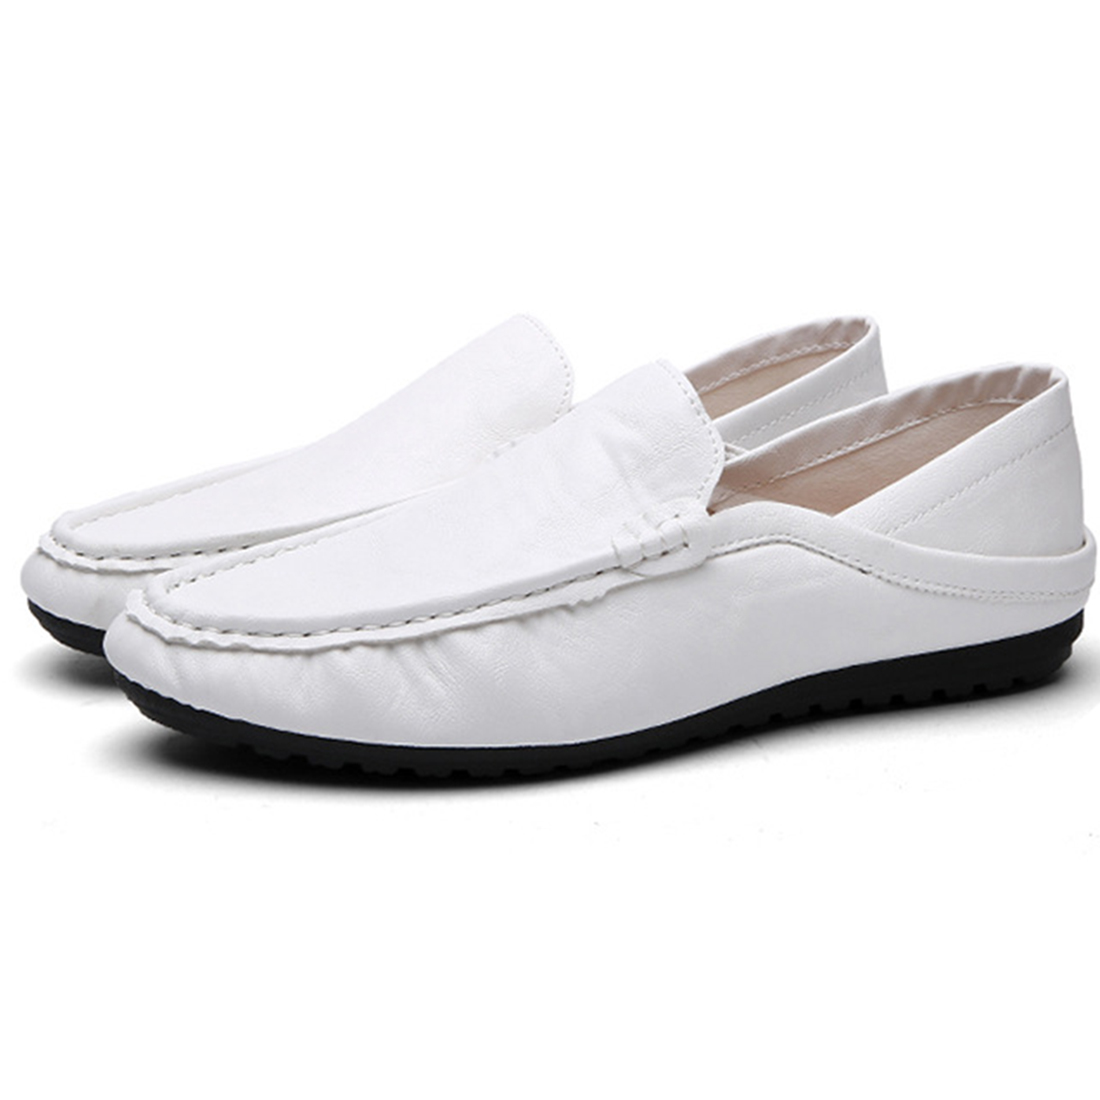 casual leather shoes oxford shoes high quality genuine